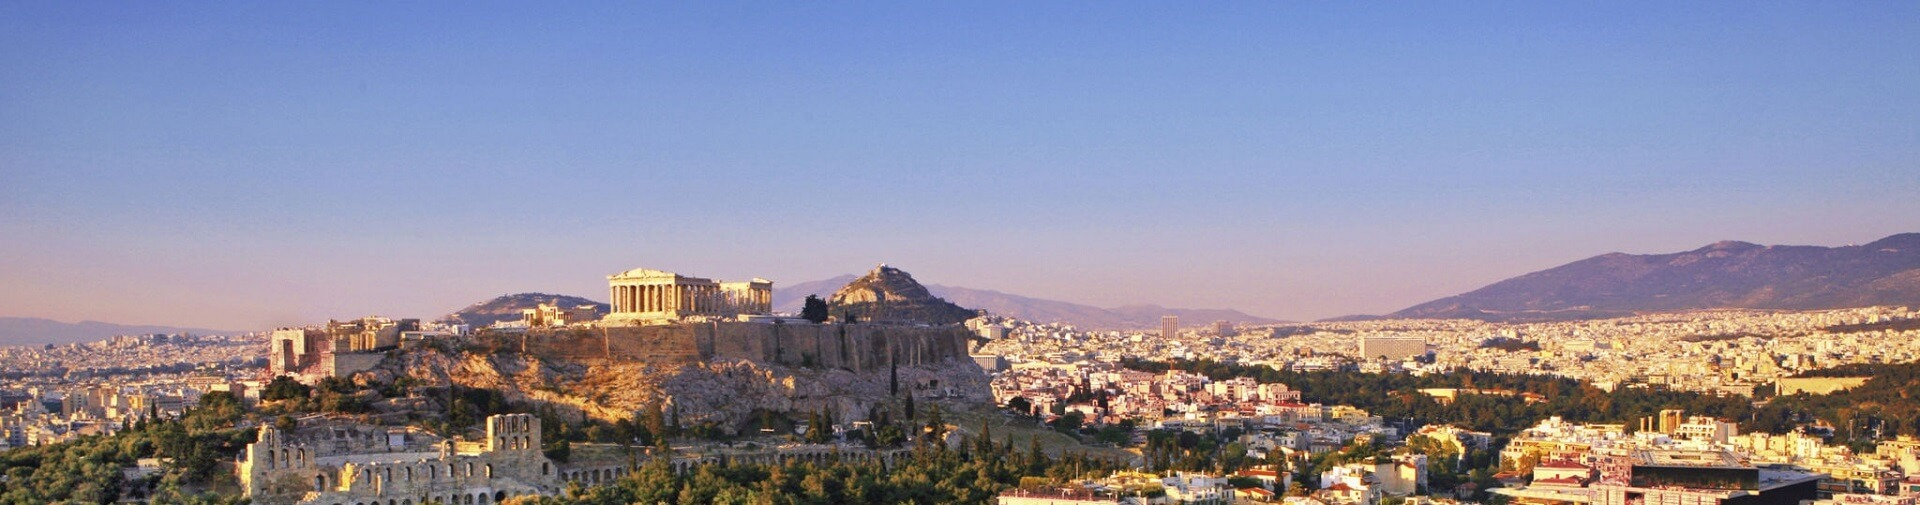 parthenon-greece-citizenship-by-investment-and-residency